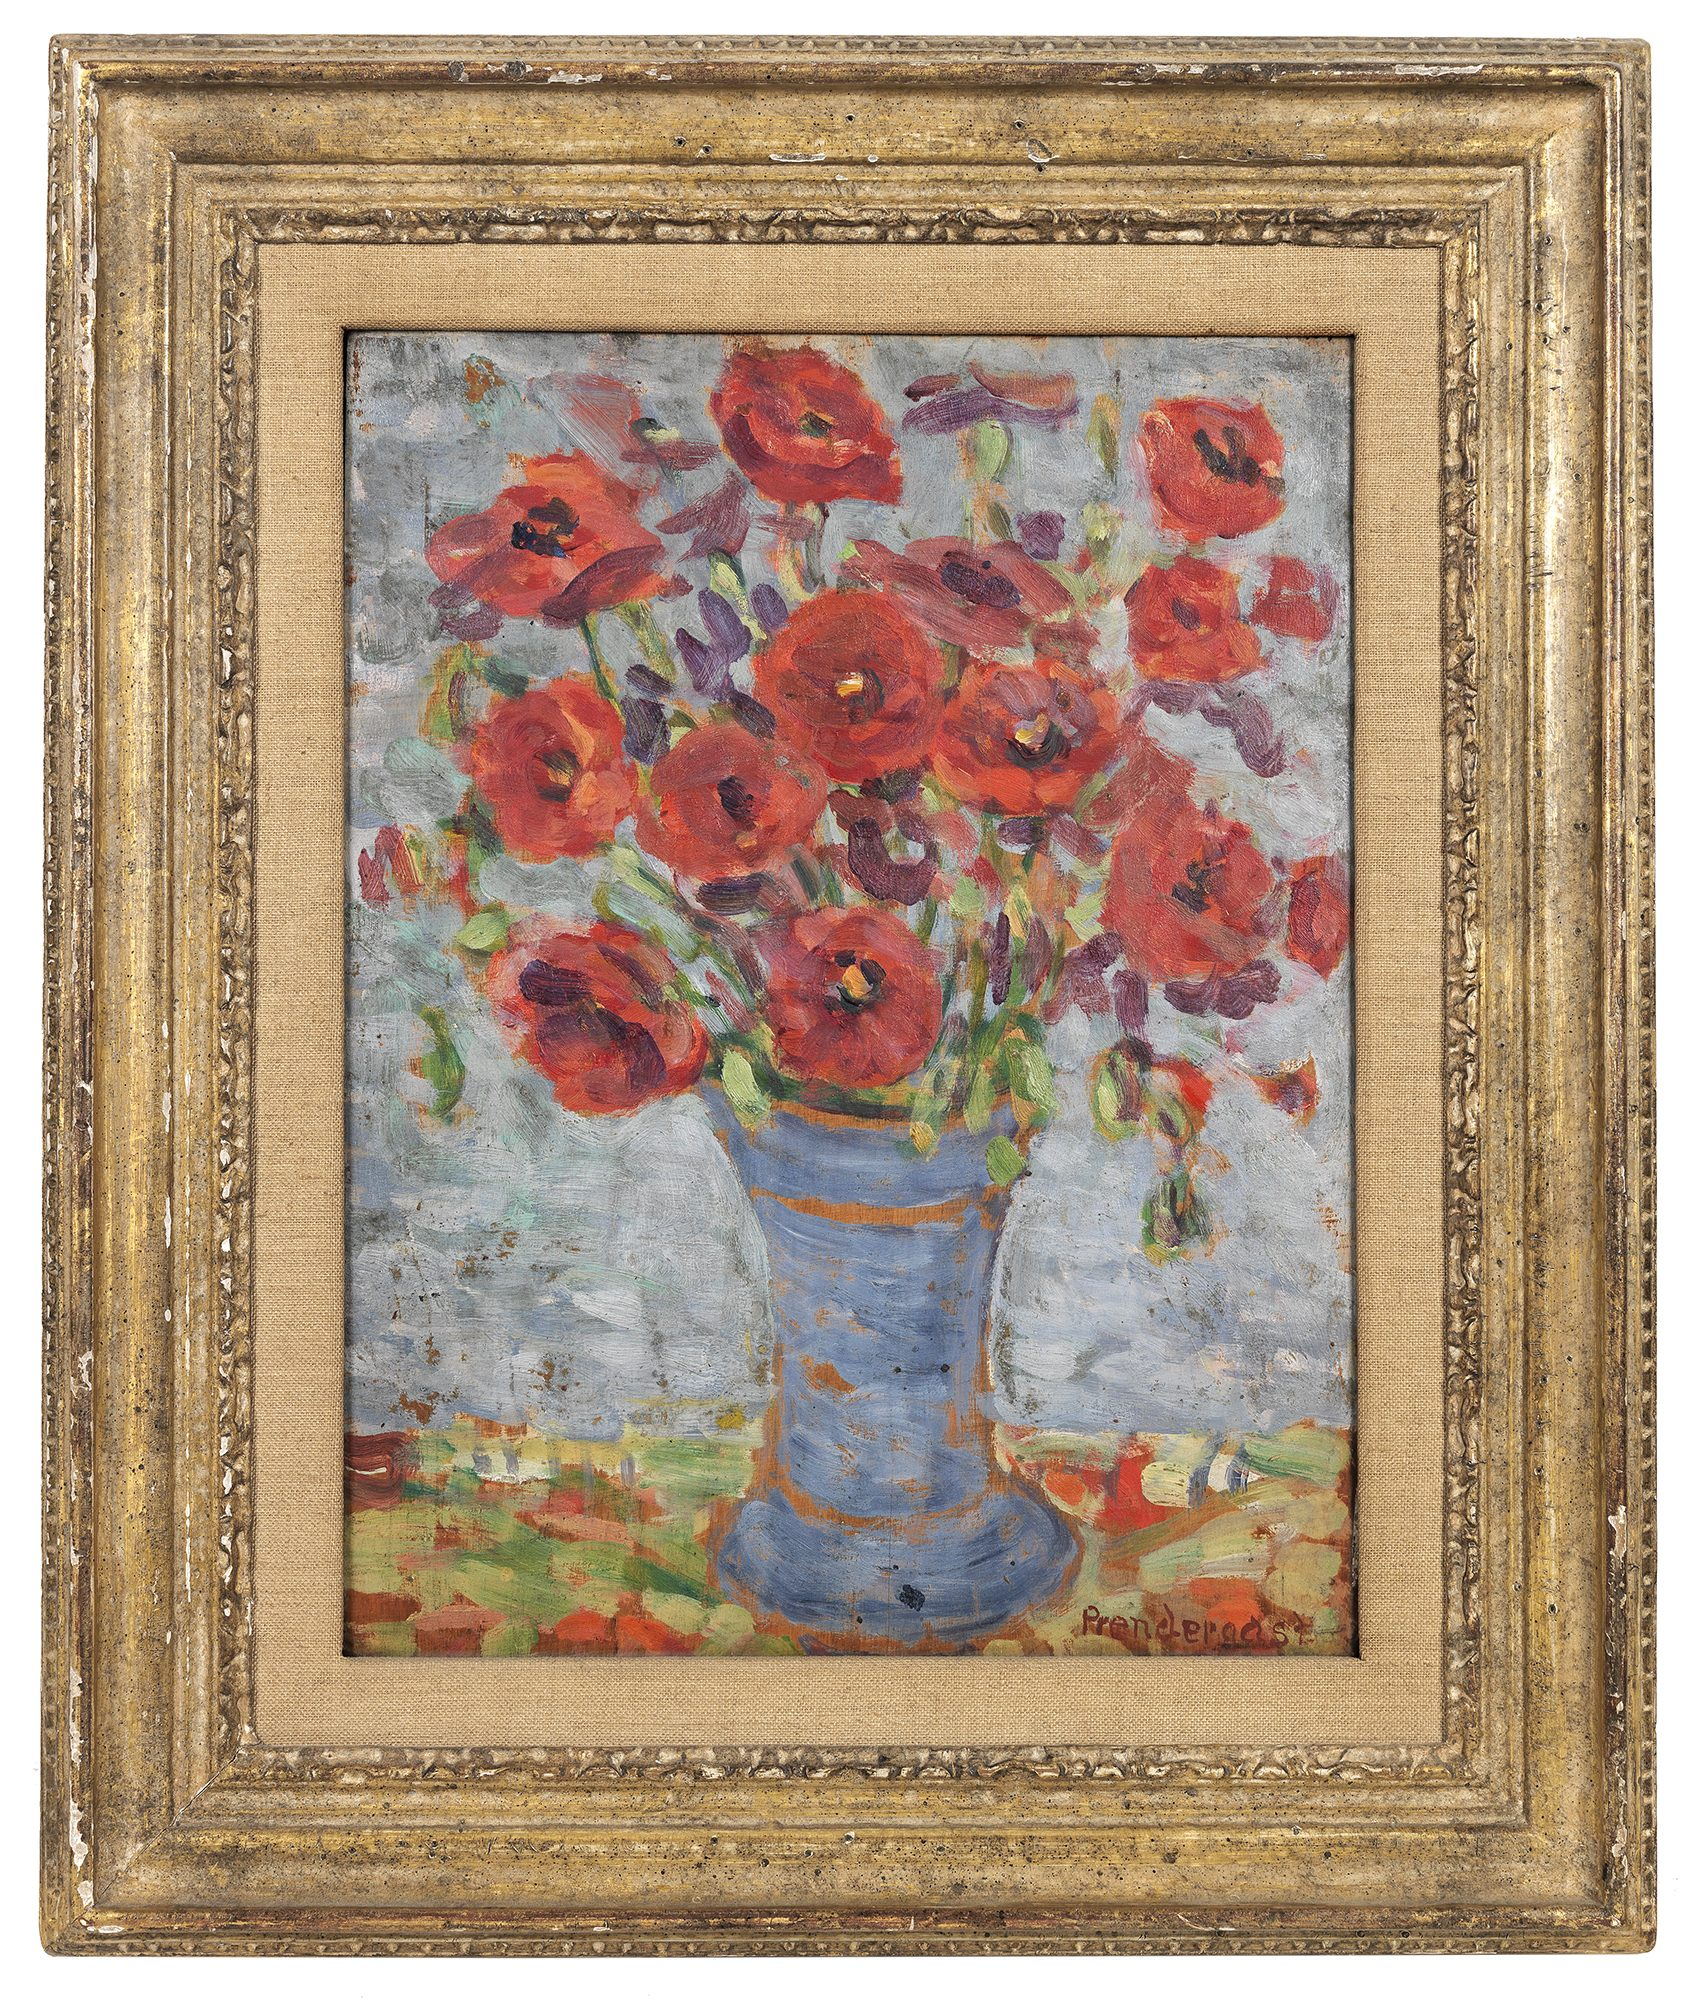 Maurice Brazil Prendergast (American, 1858-1924), Poppies in a Blue Vase, ca. 1910-1913. Oil on panel, 13 5/8 x 10 1/4 in. Gift of Mrs. Charles Prendergast. 86.18.64